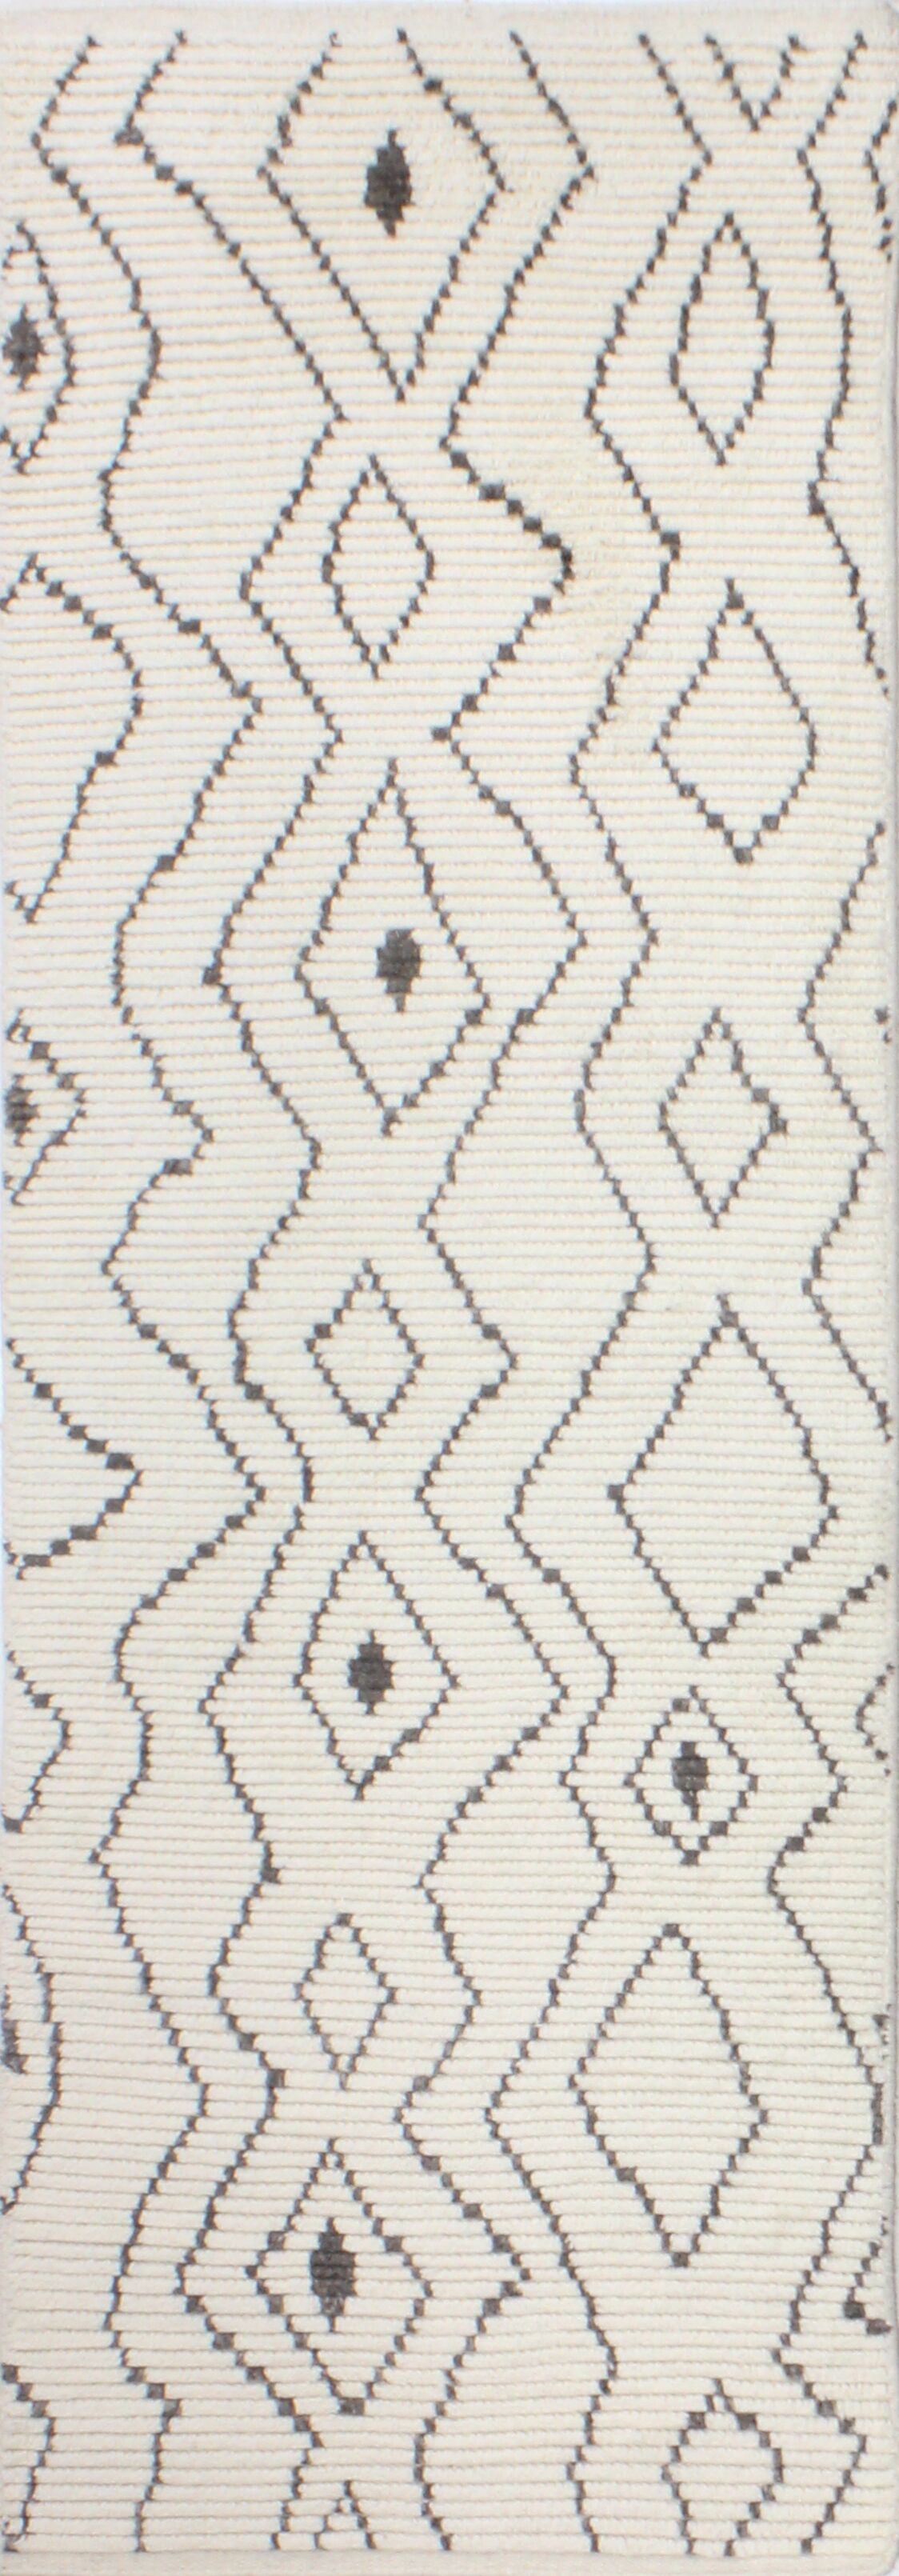 Daryl Hand-Knotted Wool Ivory Area Rug Rug Size: Runner 2'6